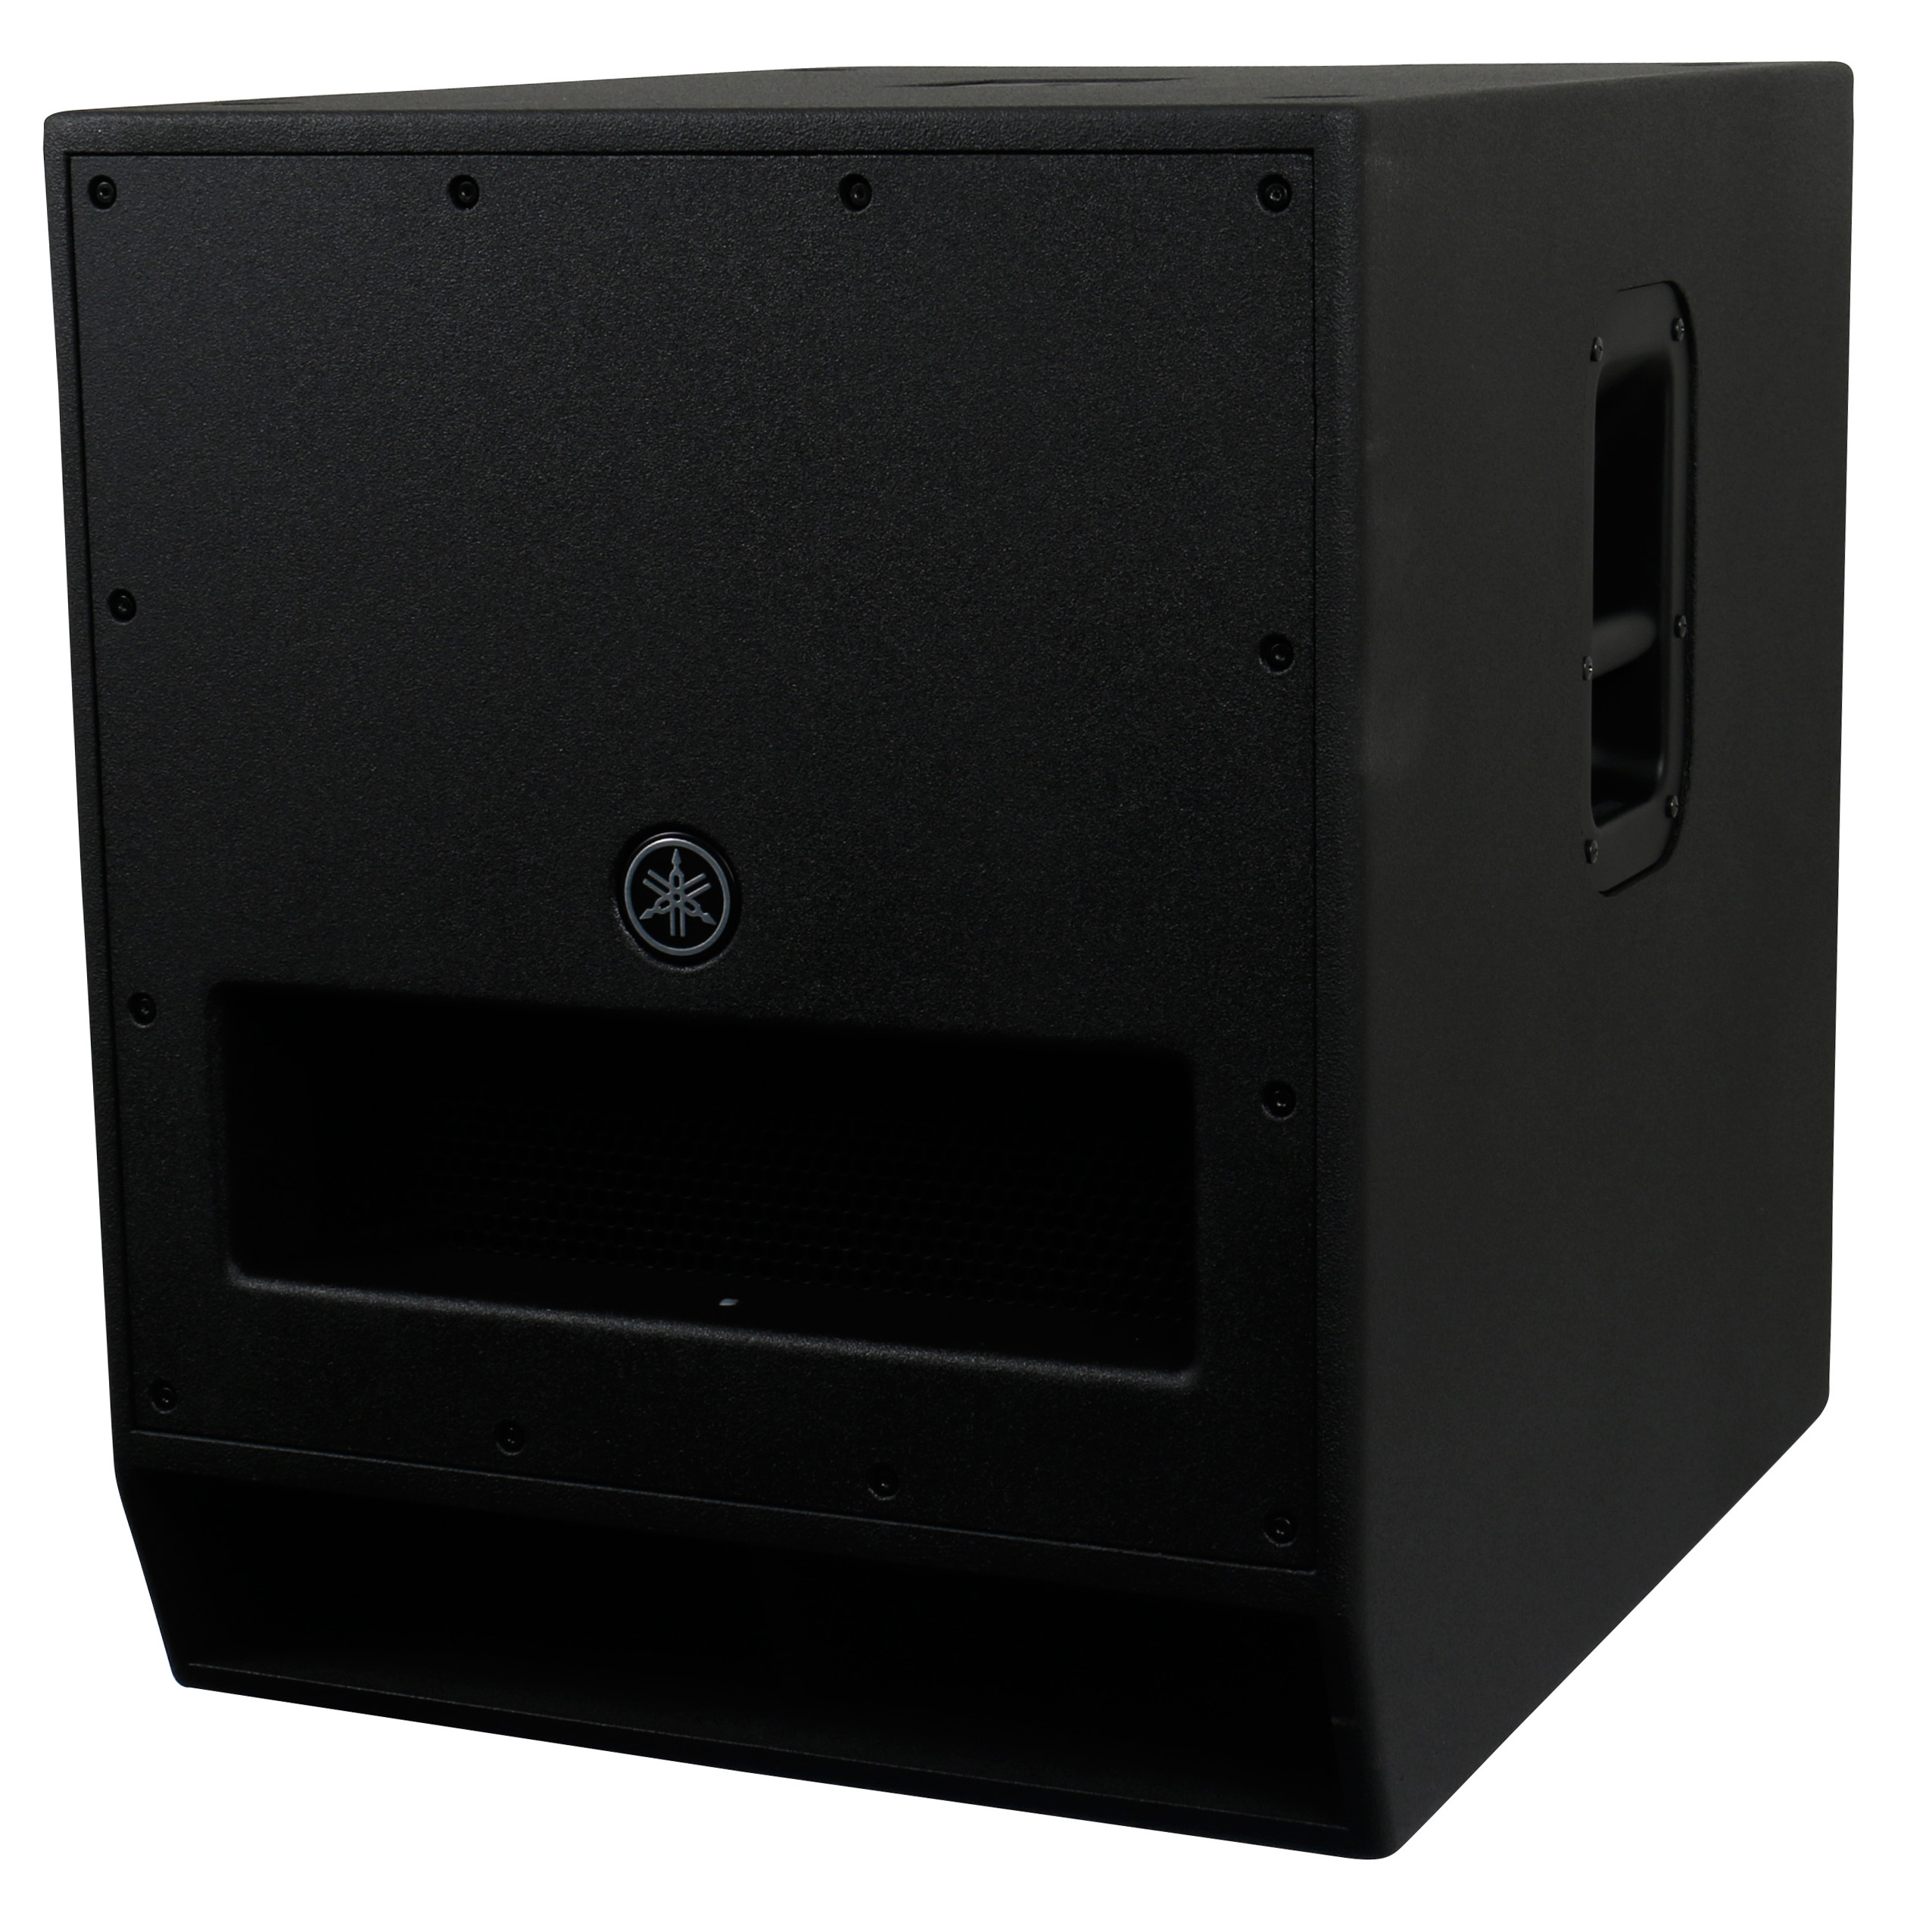 yamaha dxs 18 aktiv subwoofer kaufen bax shop. Black Bedroom Furniture Sets. Home Design Ideas